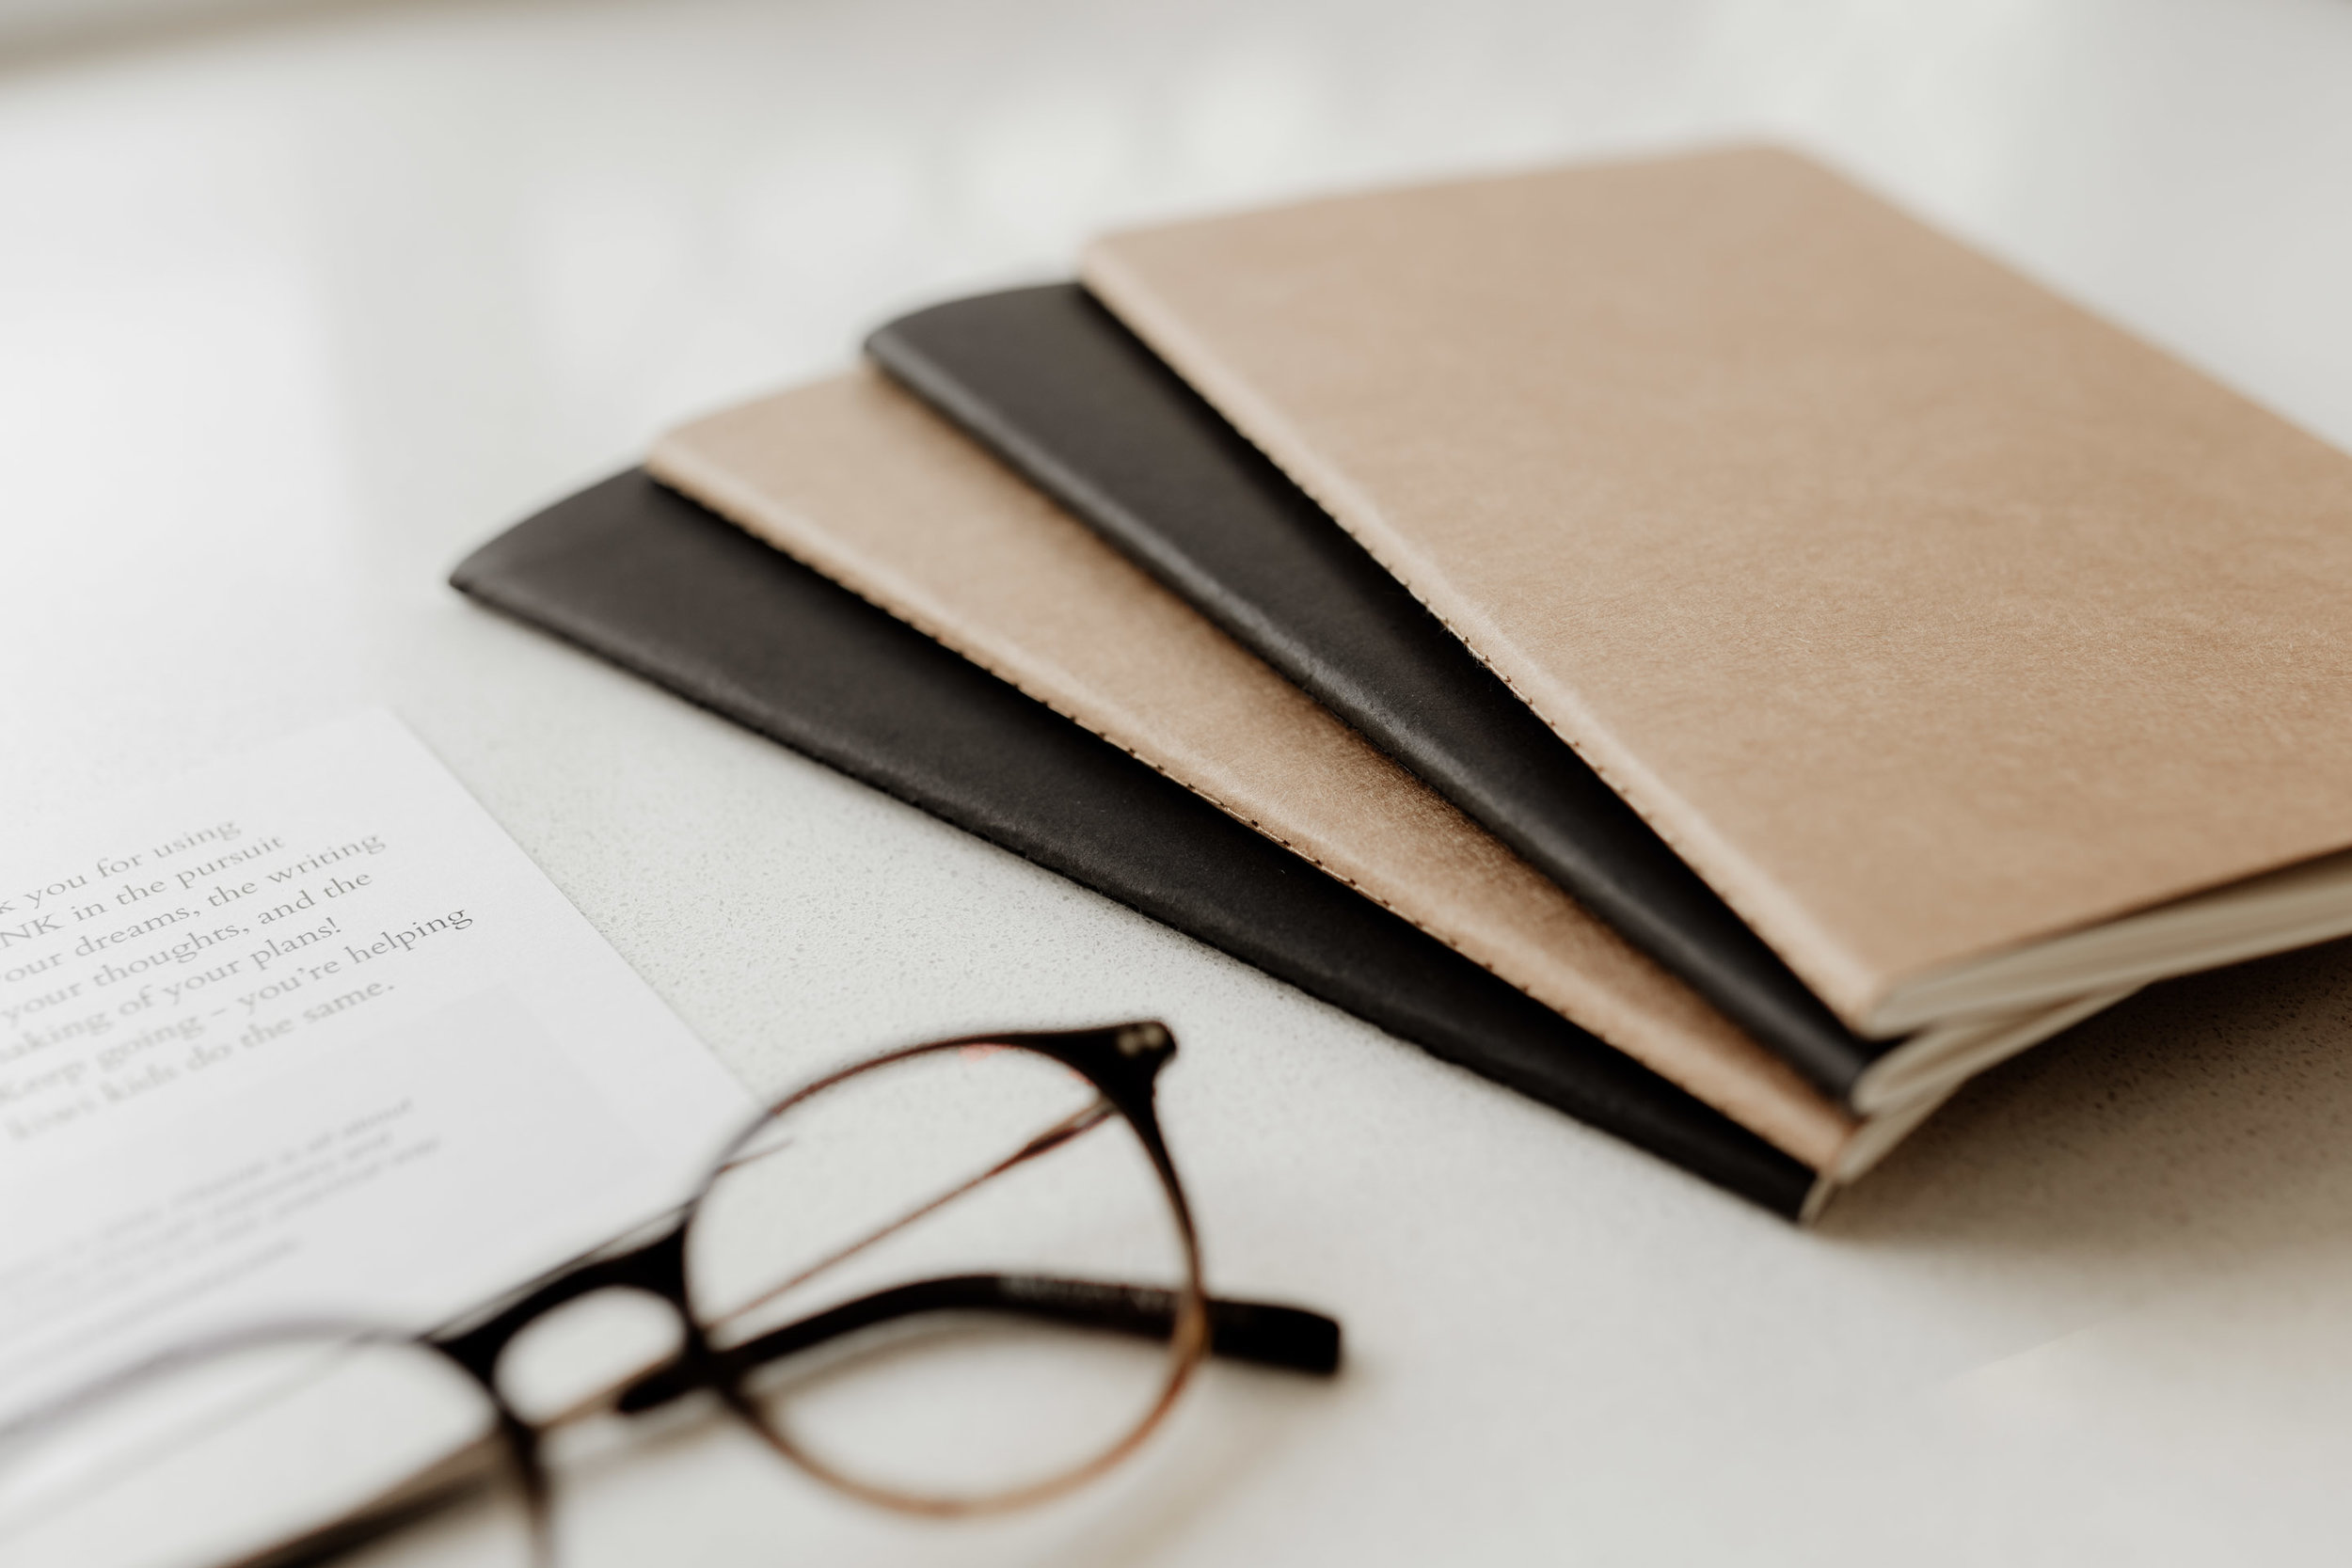 keira-mason-frank-stationery-luxe-notebooks.jpg